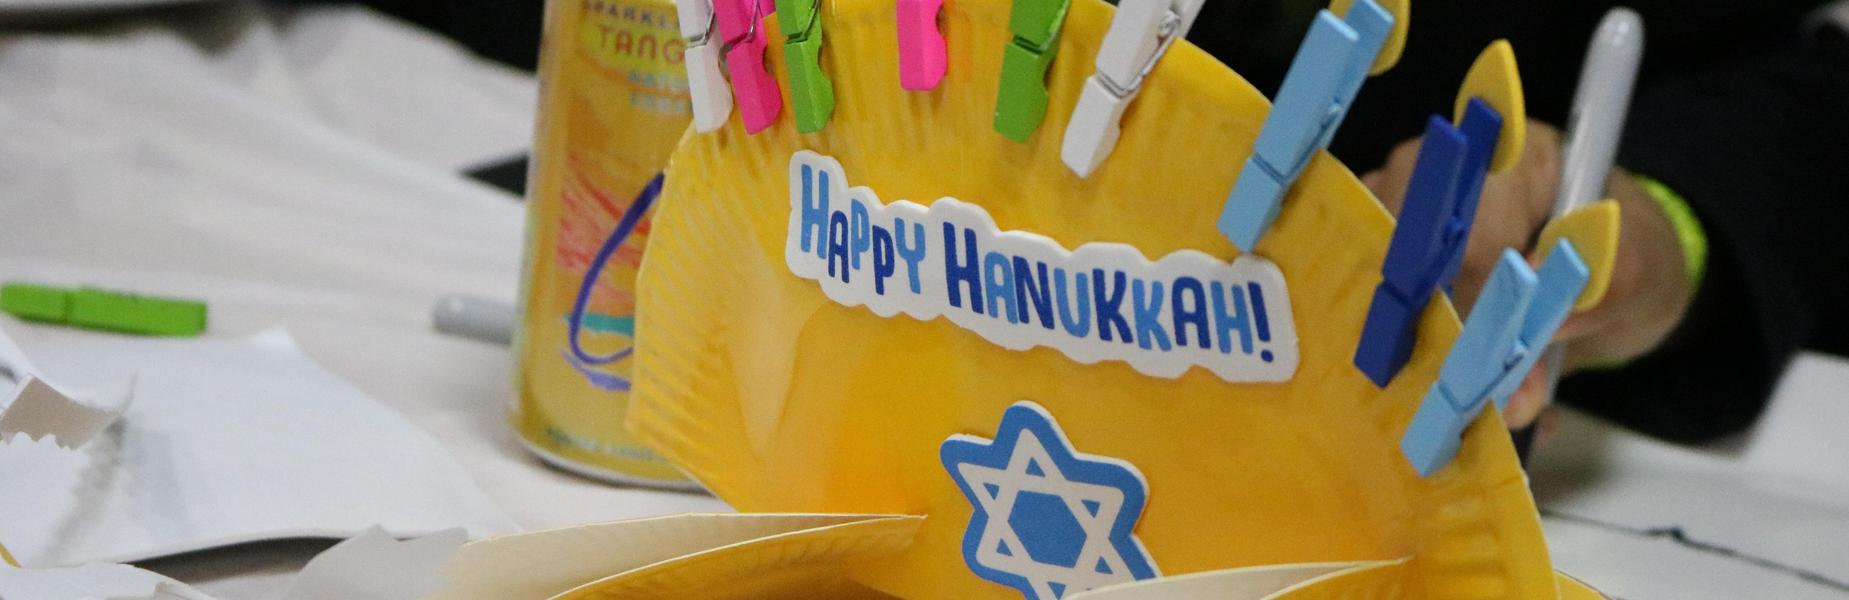 Photo of Hanukkah craft made at Handmade Holidays event at McKinley School.